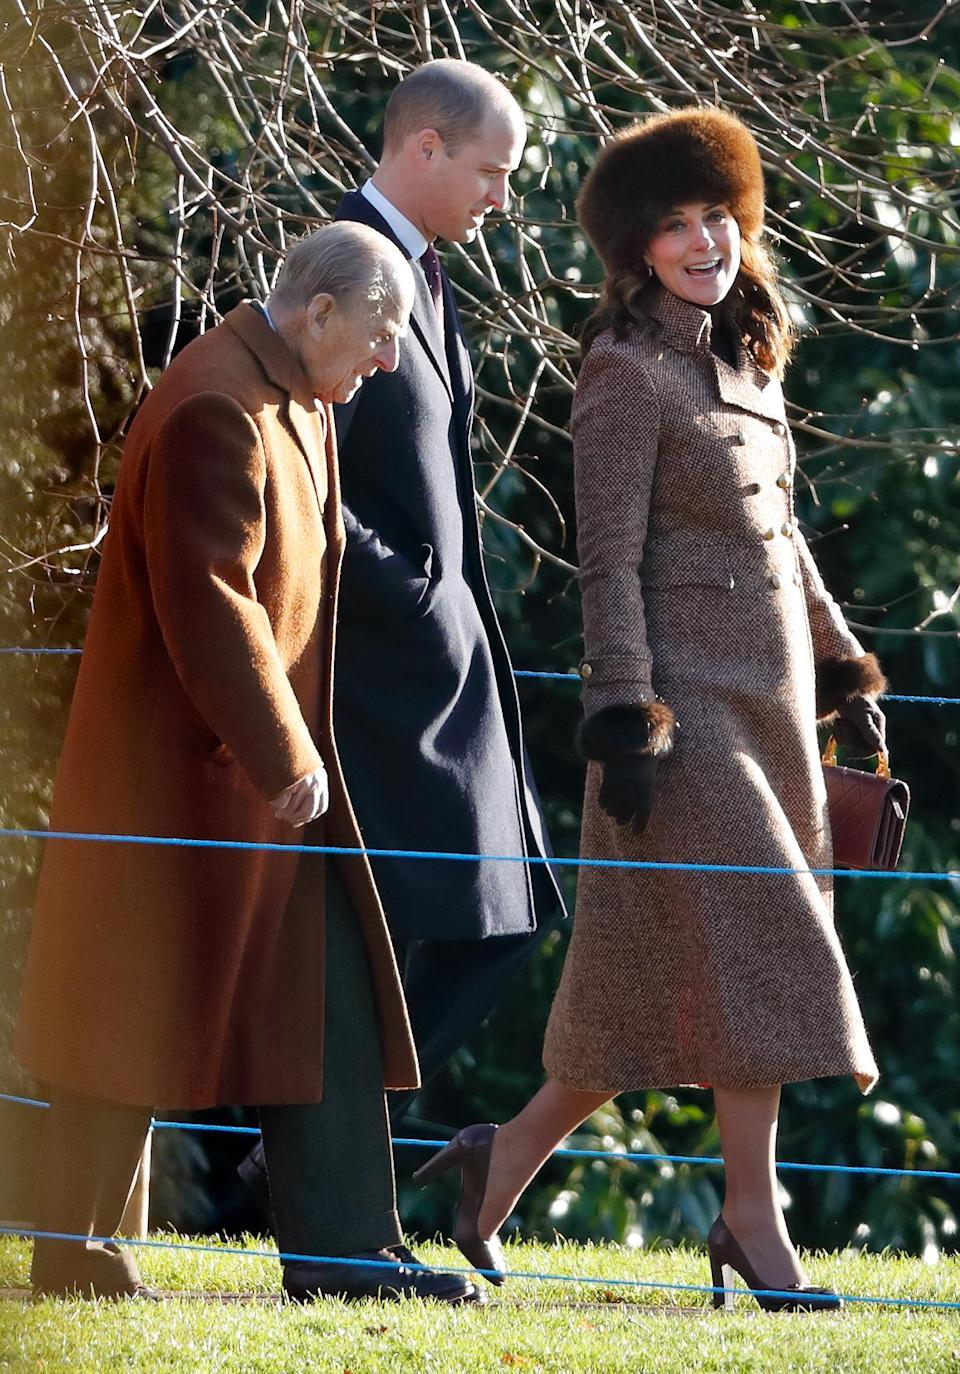 <p><strong>The occassion:</strong> Sunday services at St Mary Magdalene Church in Sandringham.<br><strong>The look:</strong> Moloh brown tweed coat with a fur hat and brown pup heels. <br>[Photo: Getty] </p>